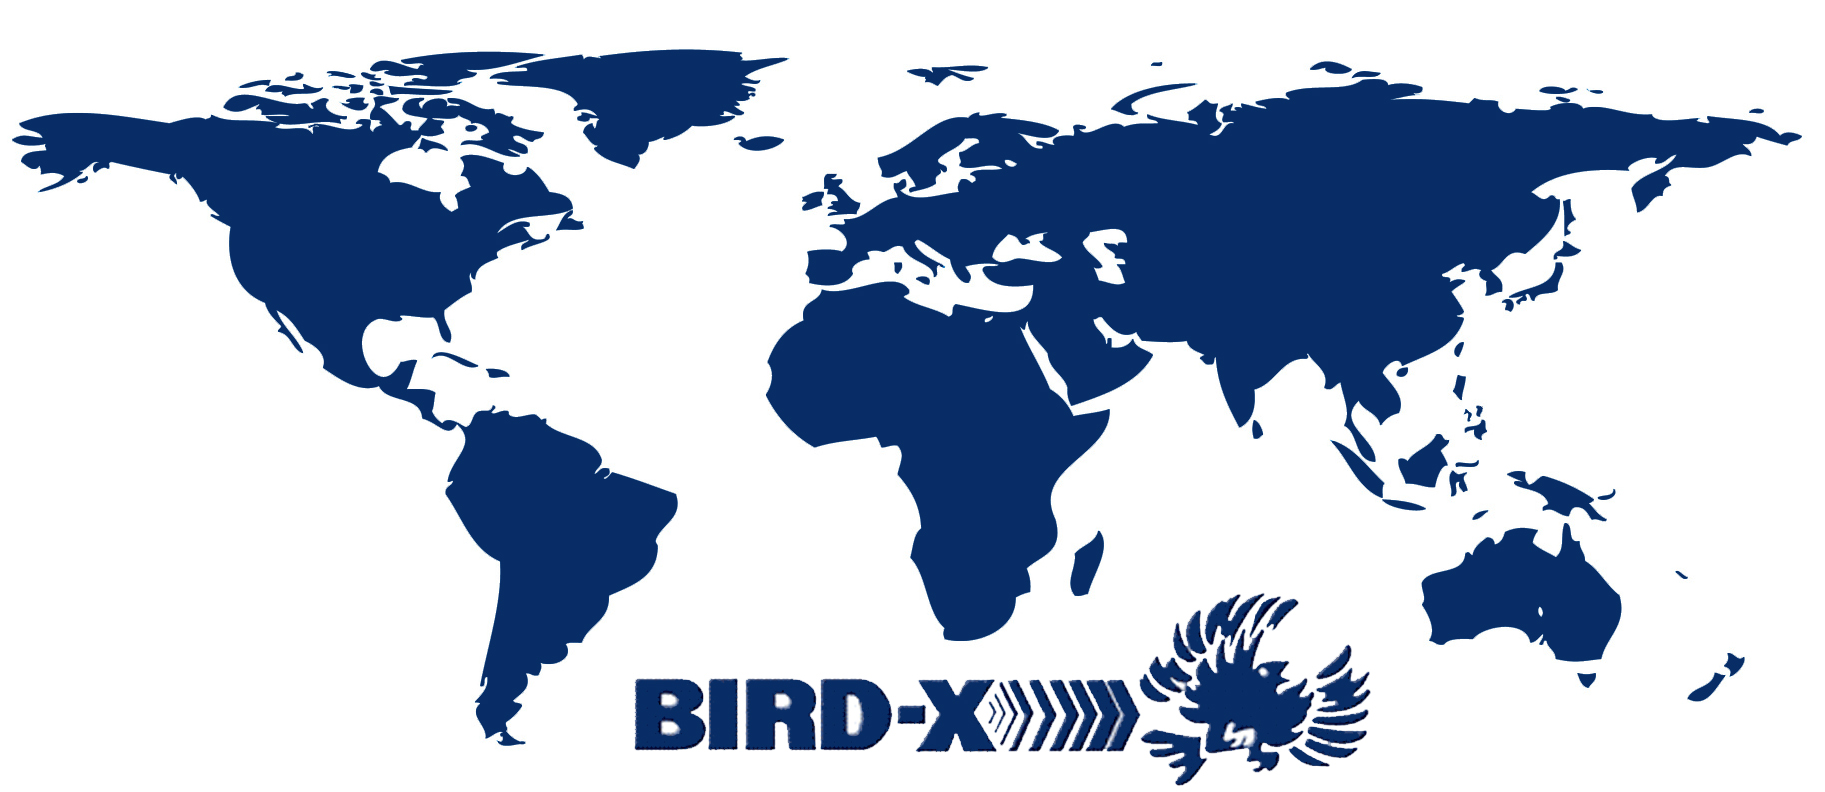 On a Mission to Save the Planet, Literally: Bird-X, Inc. Sends International Sales Manager On-Location to Boost Green Product Sales Worldwide